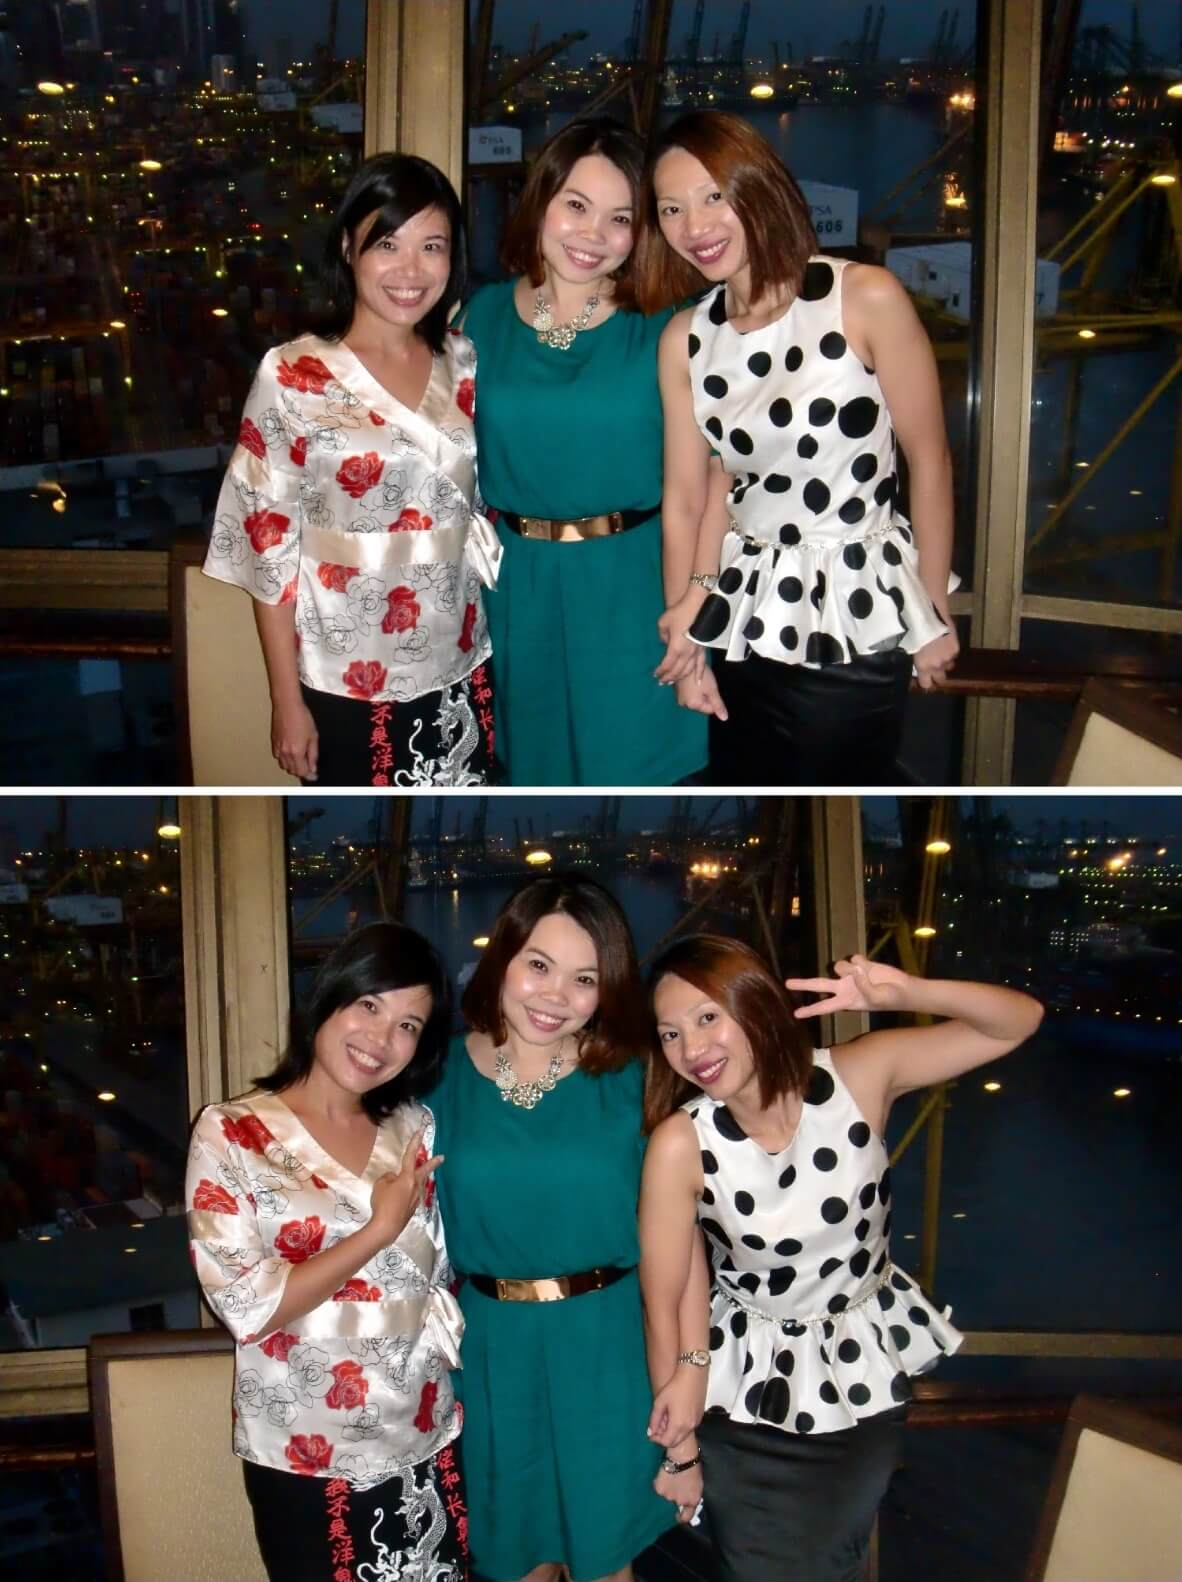 Good Friends at Prima Tower